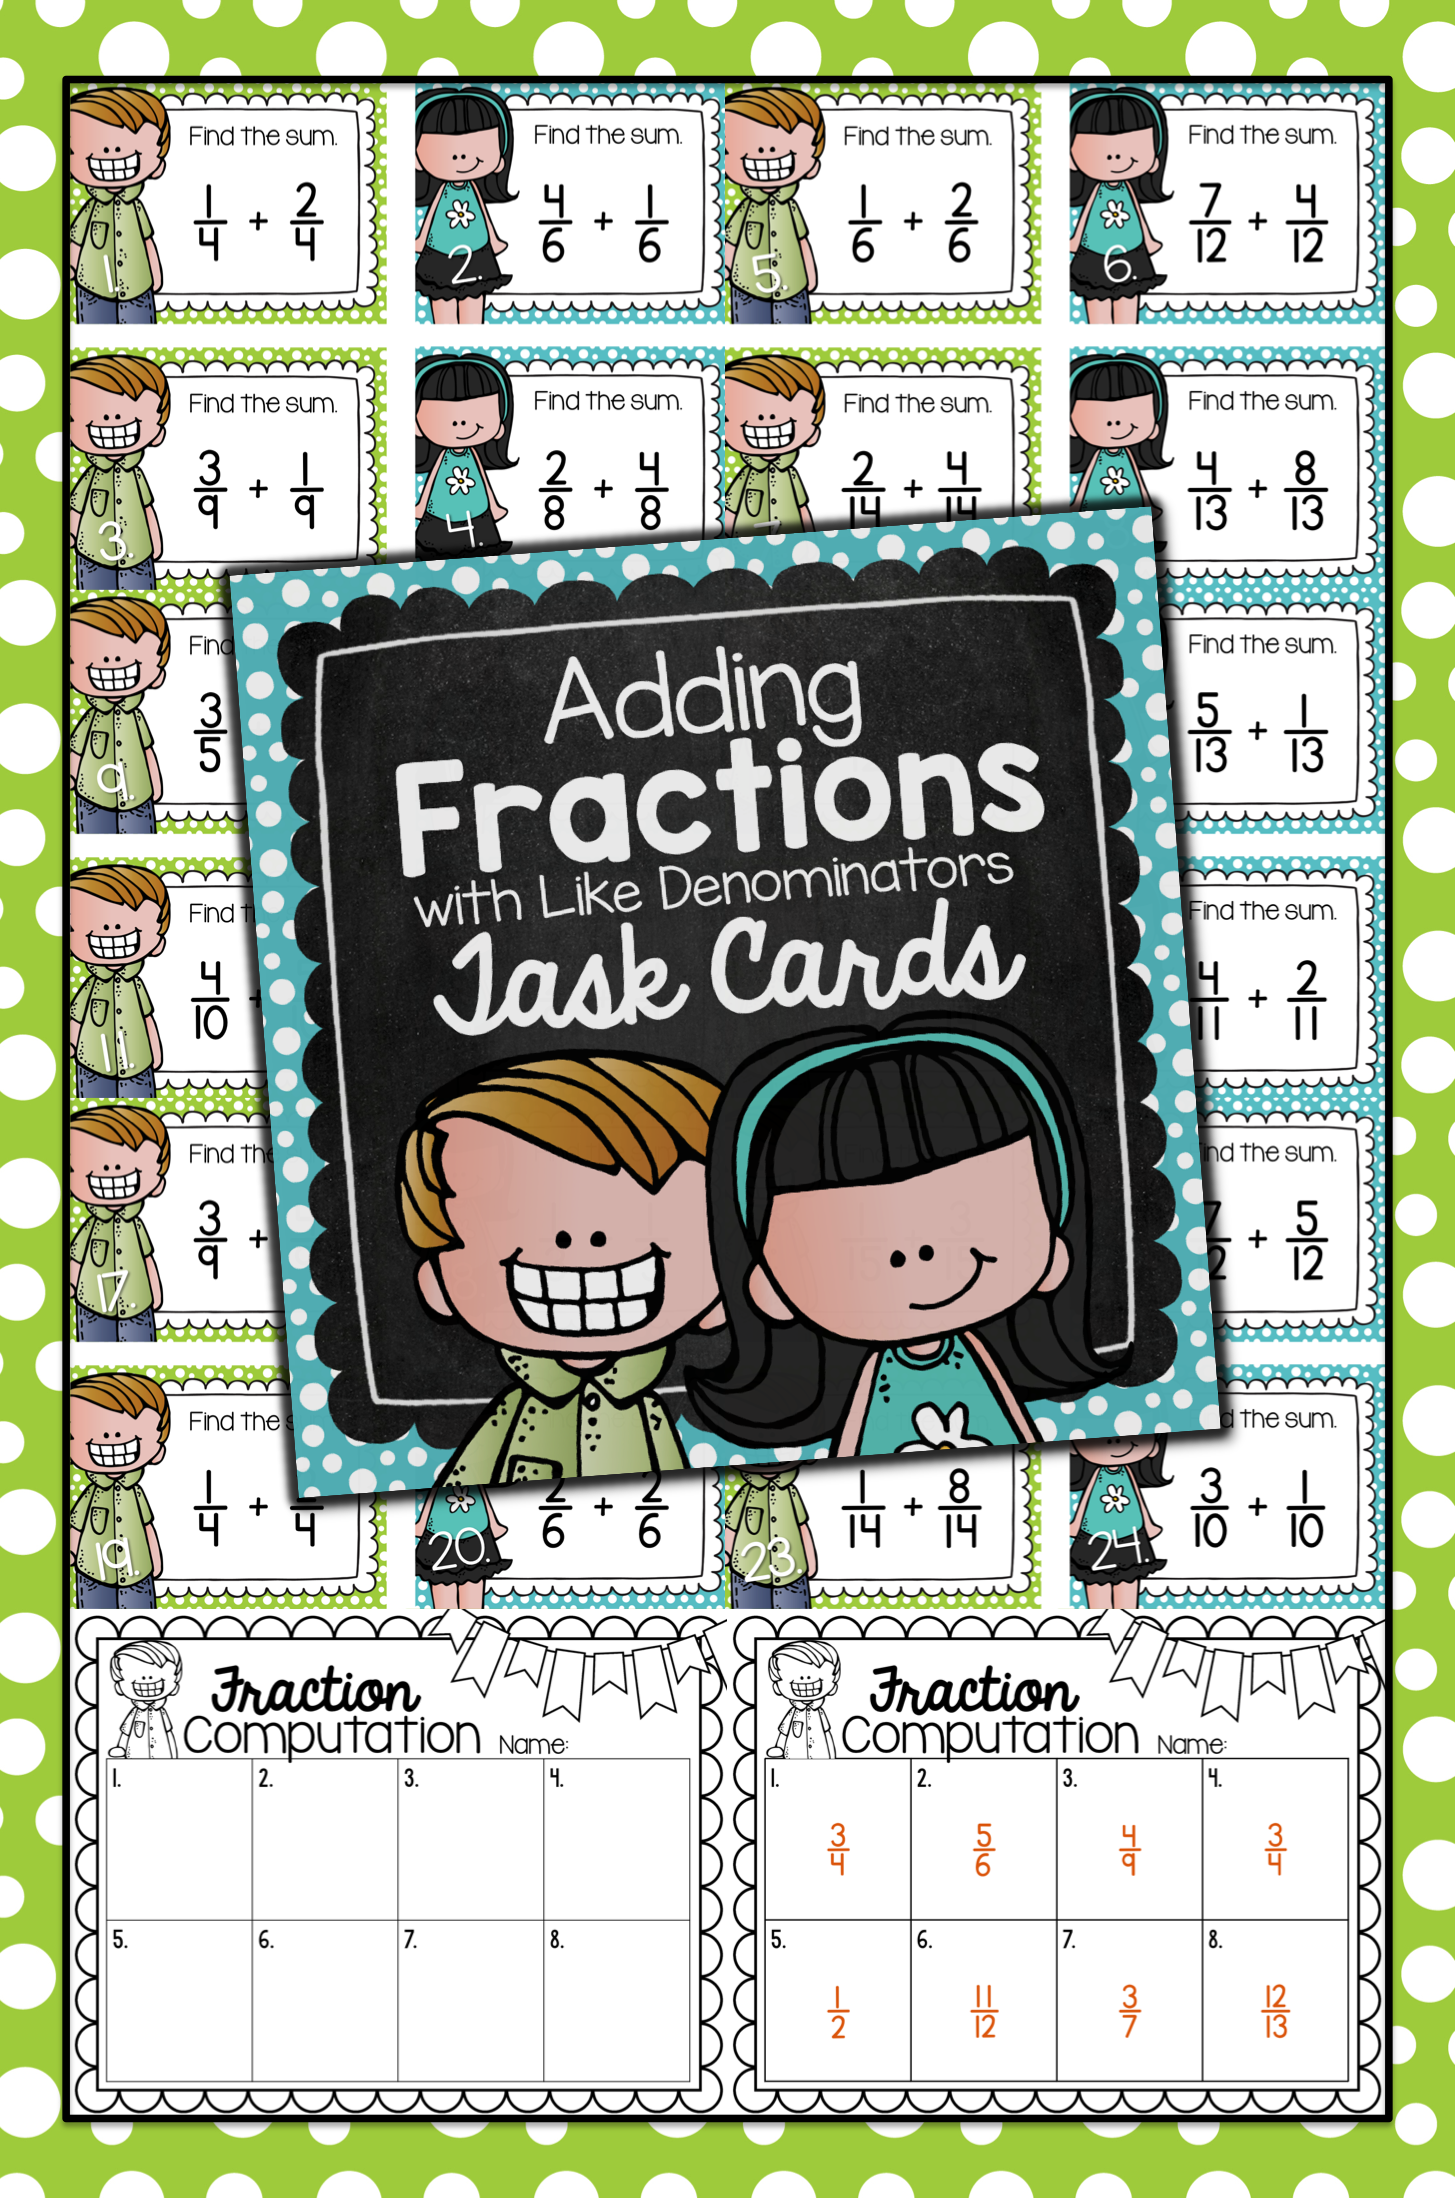 Adding Fractions With Like Denominators Task Cards For